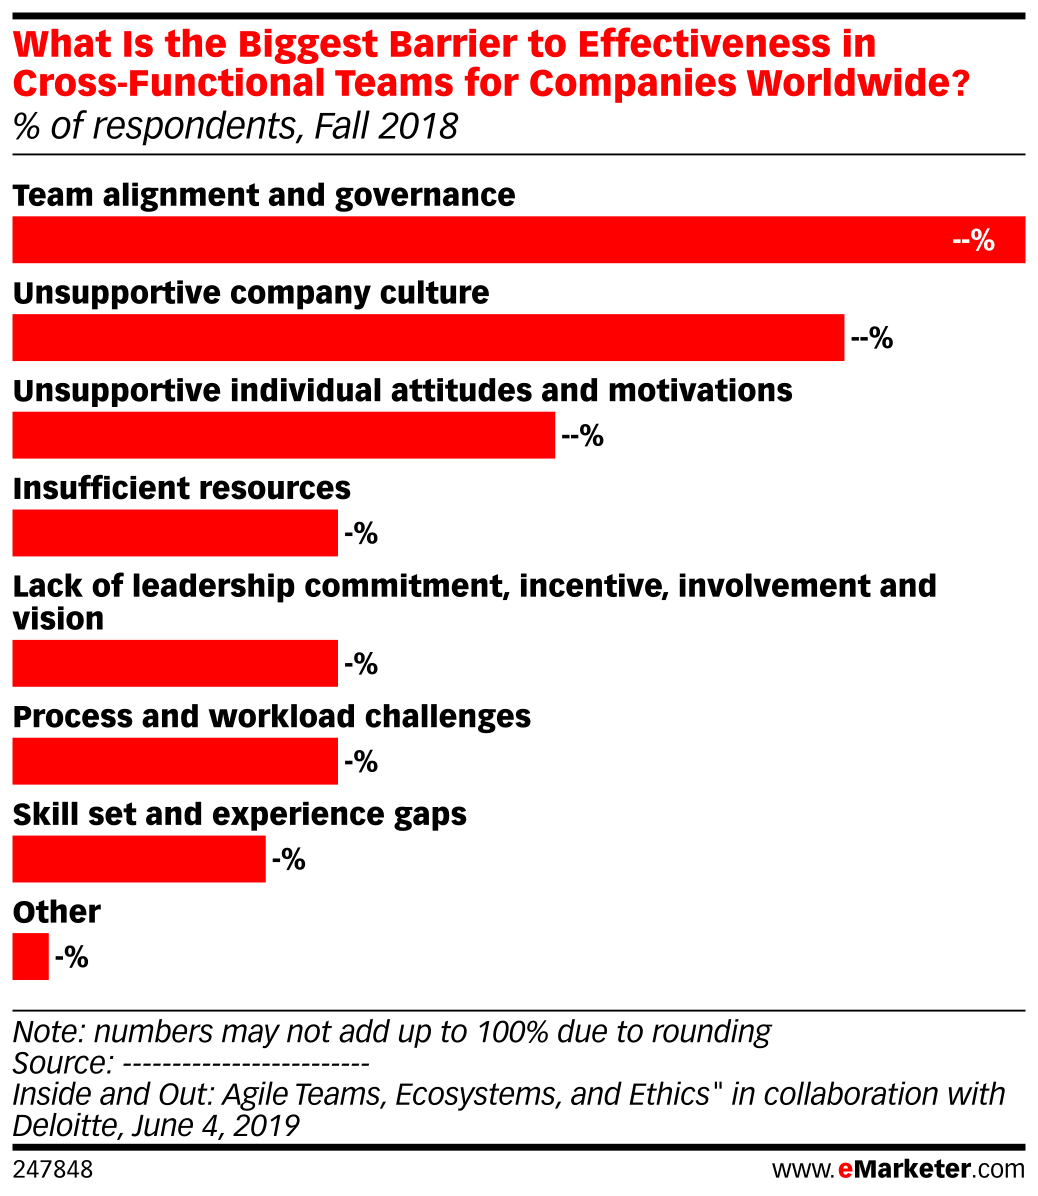 What Is the Biggest Barrier to Effectiveness in Cross-Functional Teams for Companies Worldwide? (% of respondents, Fall 2018)